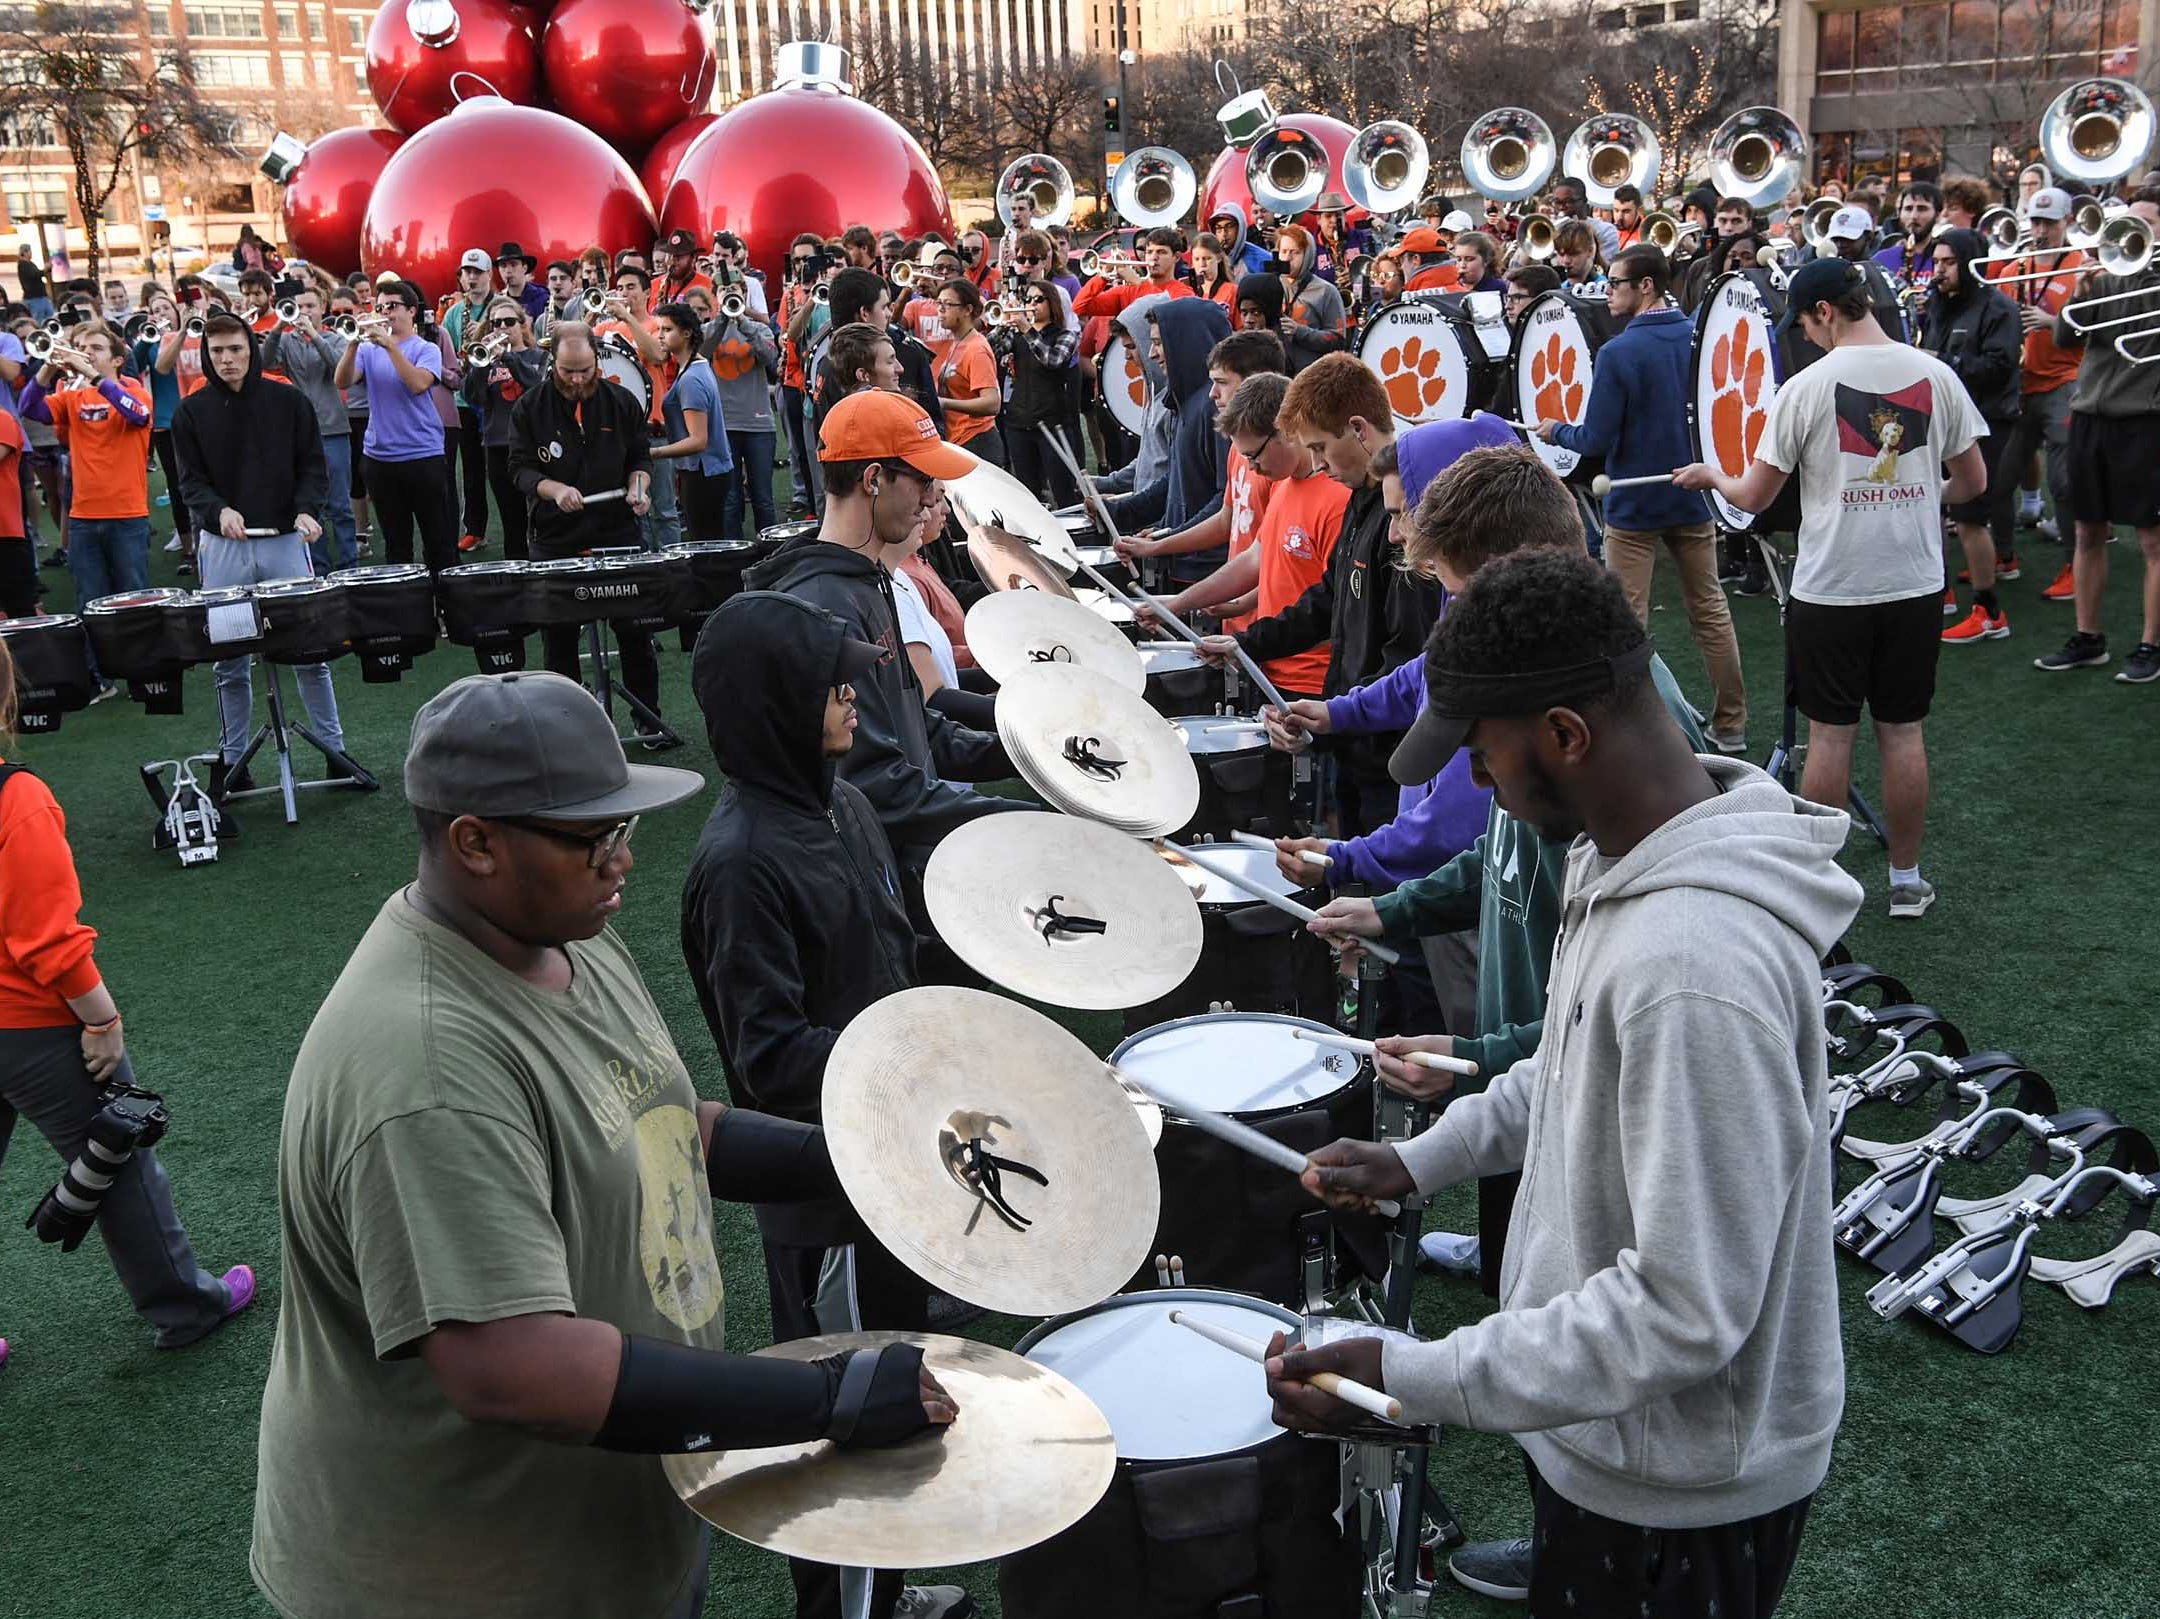 Drumline play during Clemson Band practice outside the Omni in Dallas December 27, 2018.